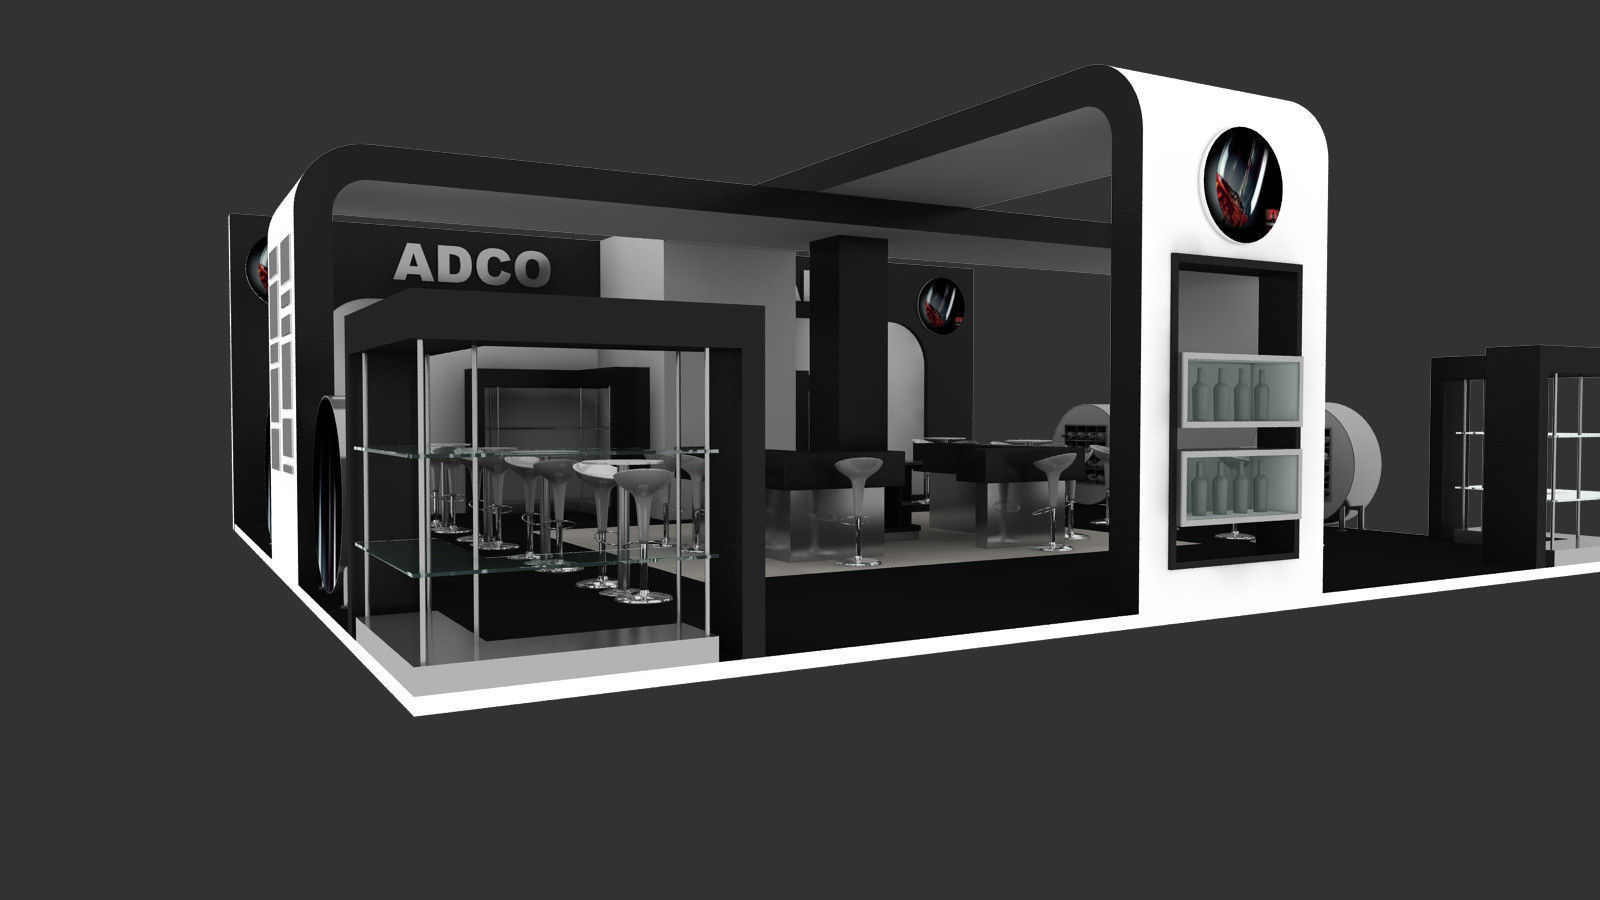 Exhibition Stand Design Price : Adco exhibition stand design d model animated